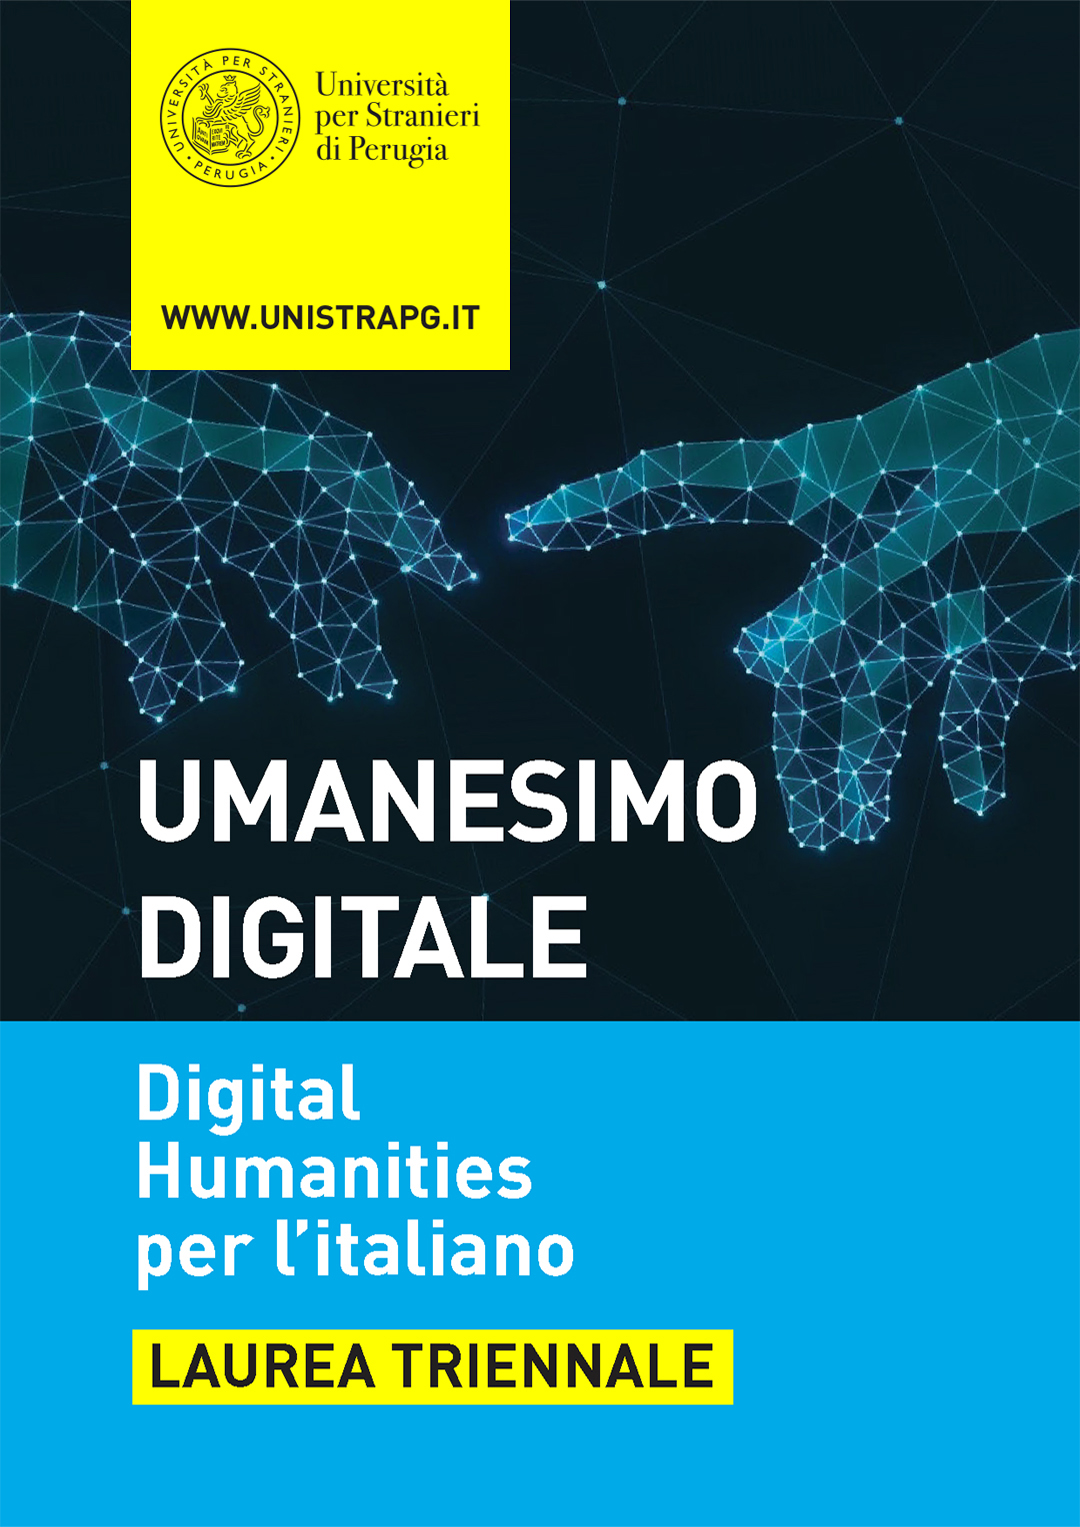 Digital humanities per l'italiano